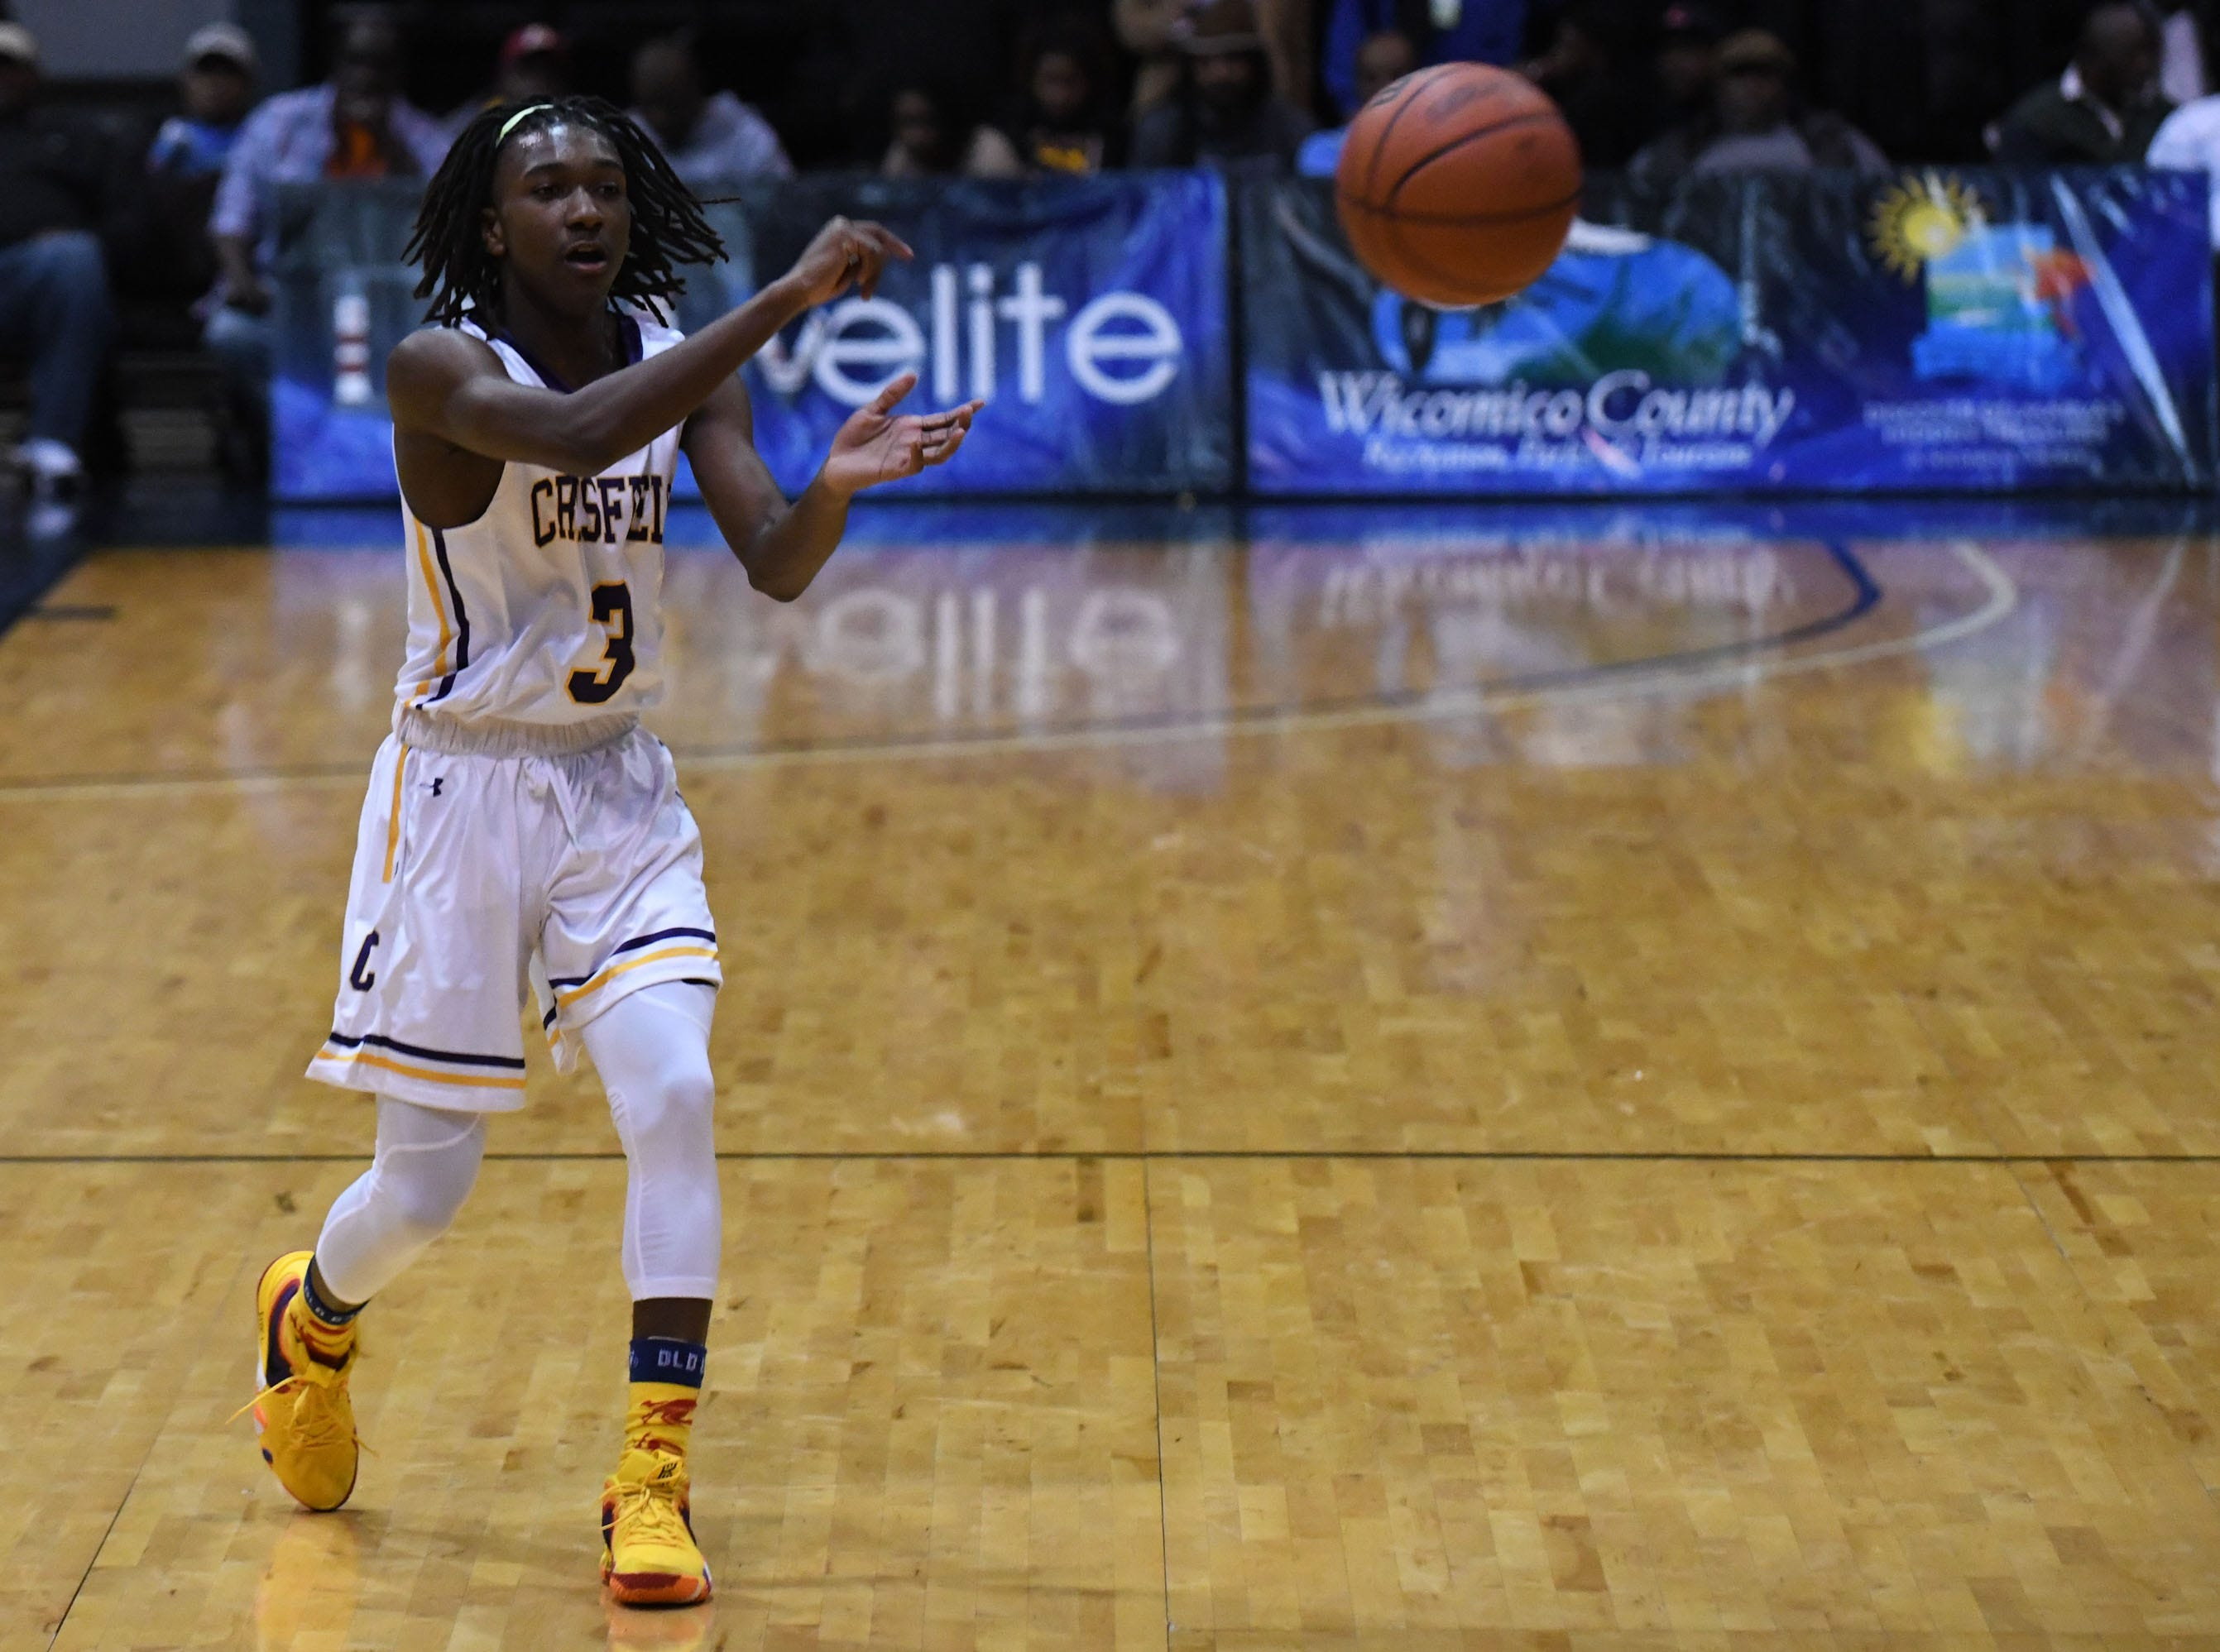 Crisfield's Ry'Kell Waters passes the ball against Dunbar on Thursday, Dec. 26, 2018 during the Governor's Challenge in Salisbury, Md.